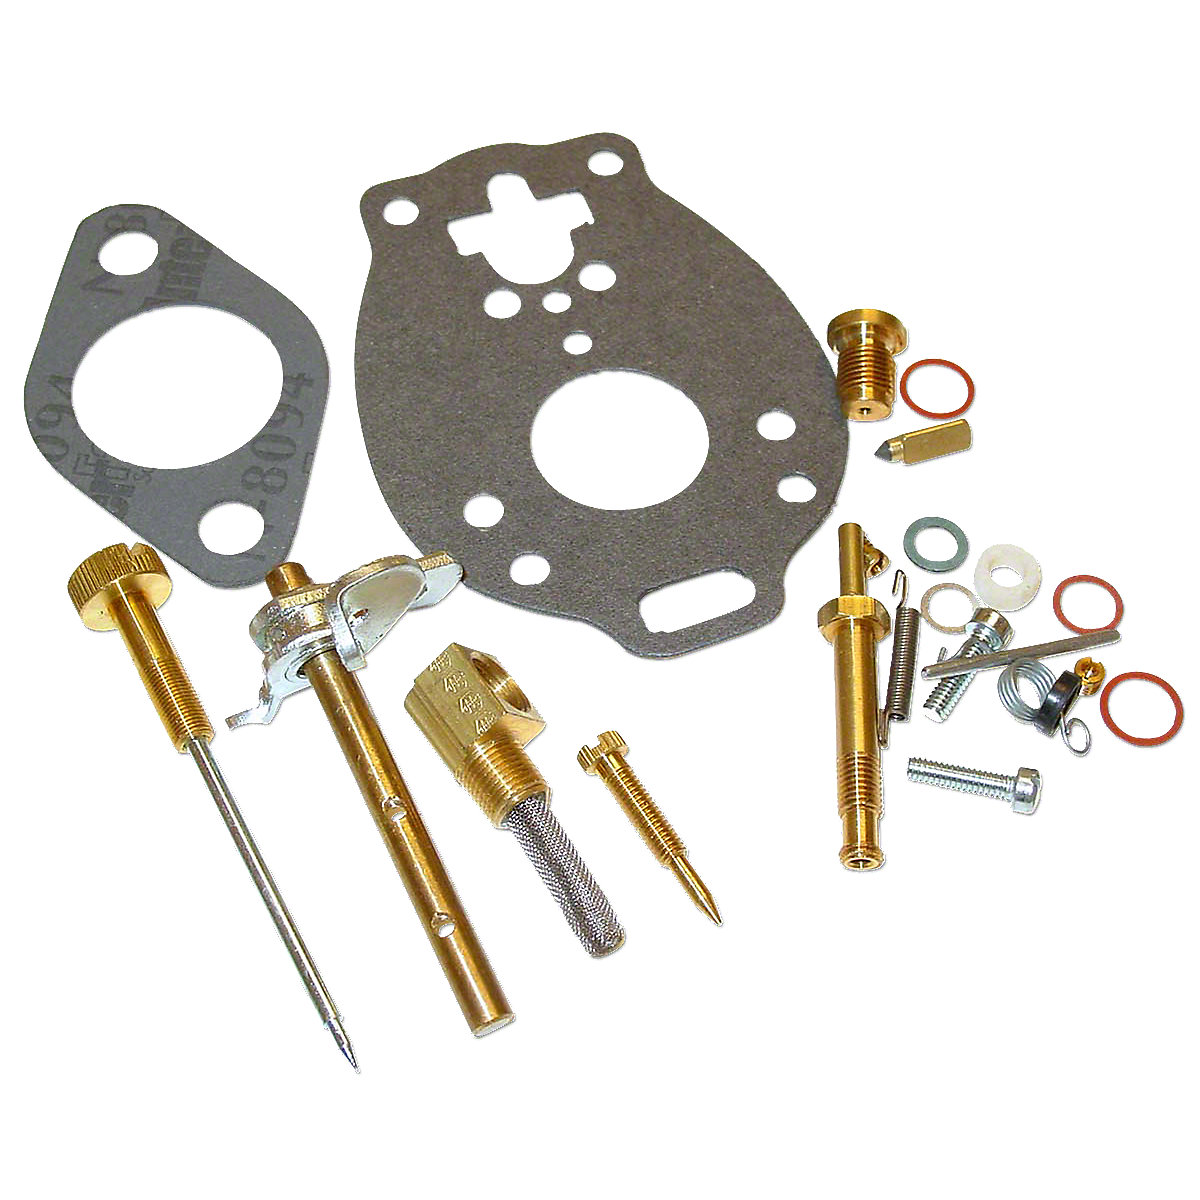 Marvel Schebler Carburetor Kit For Massey Ferguson: TE20, TO20, TO30.